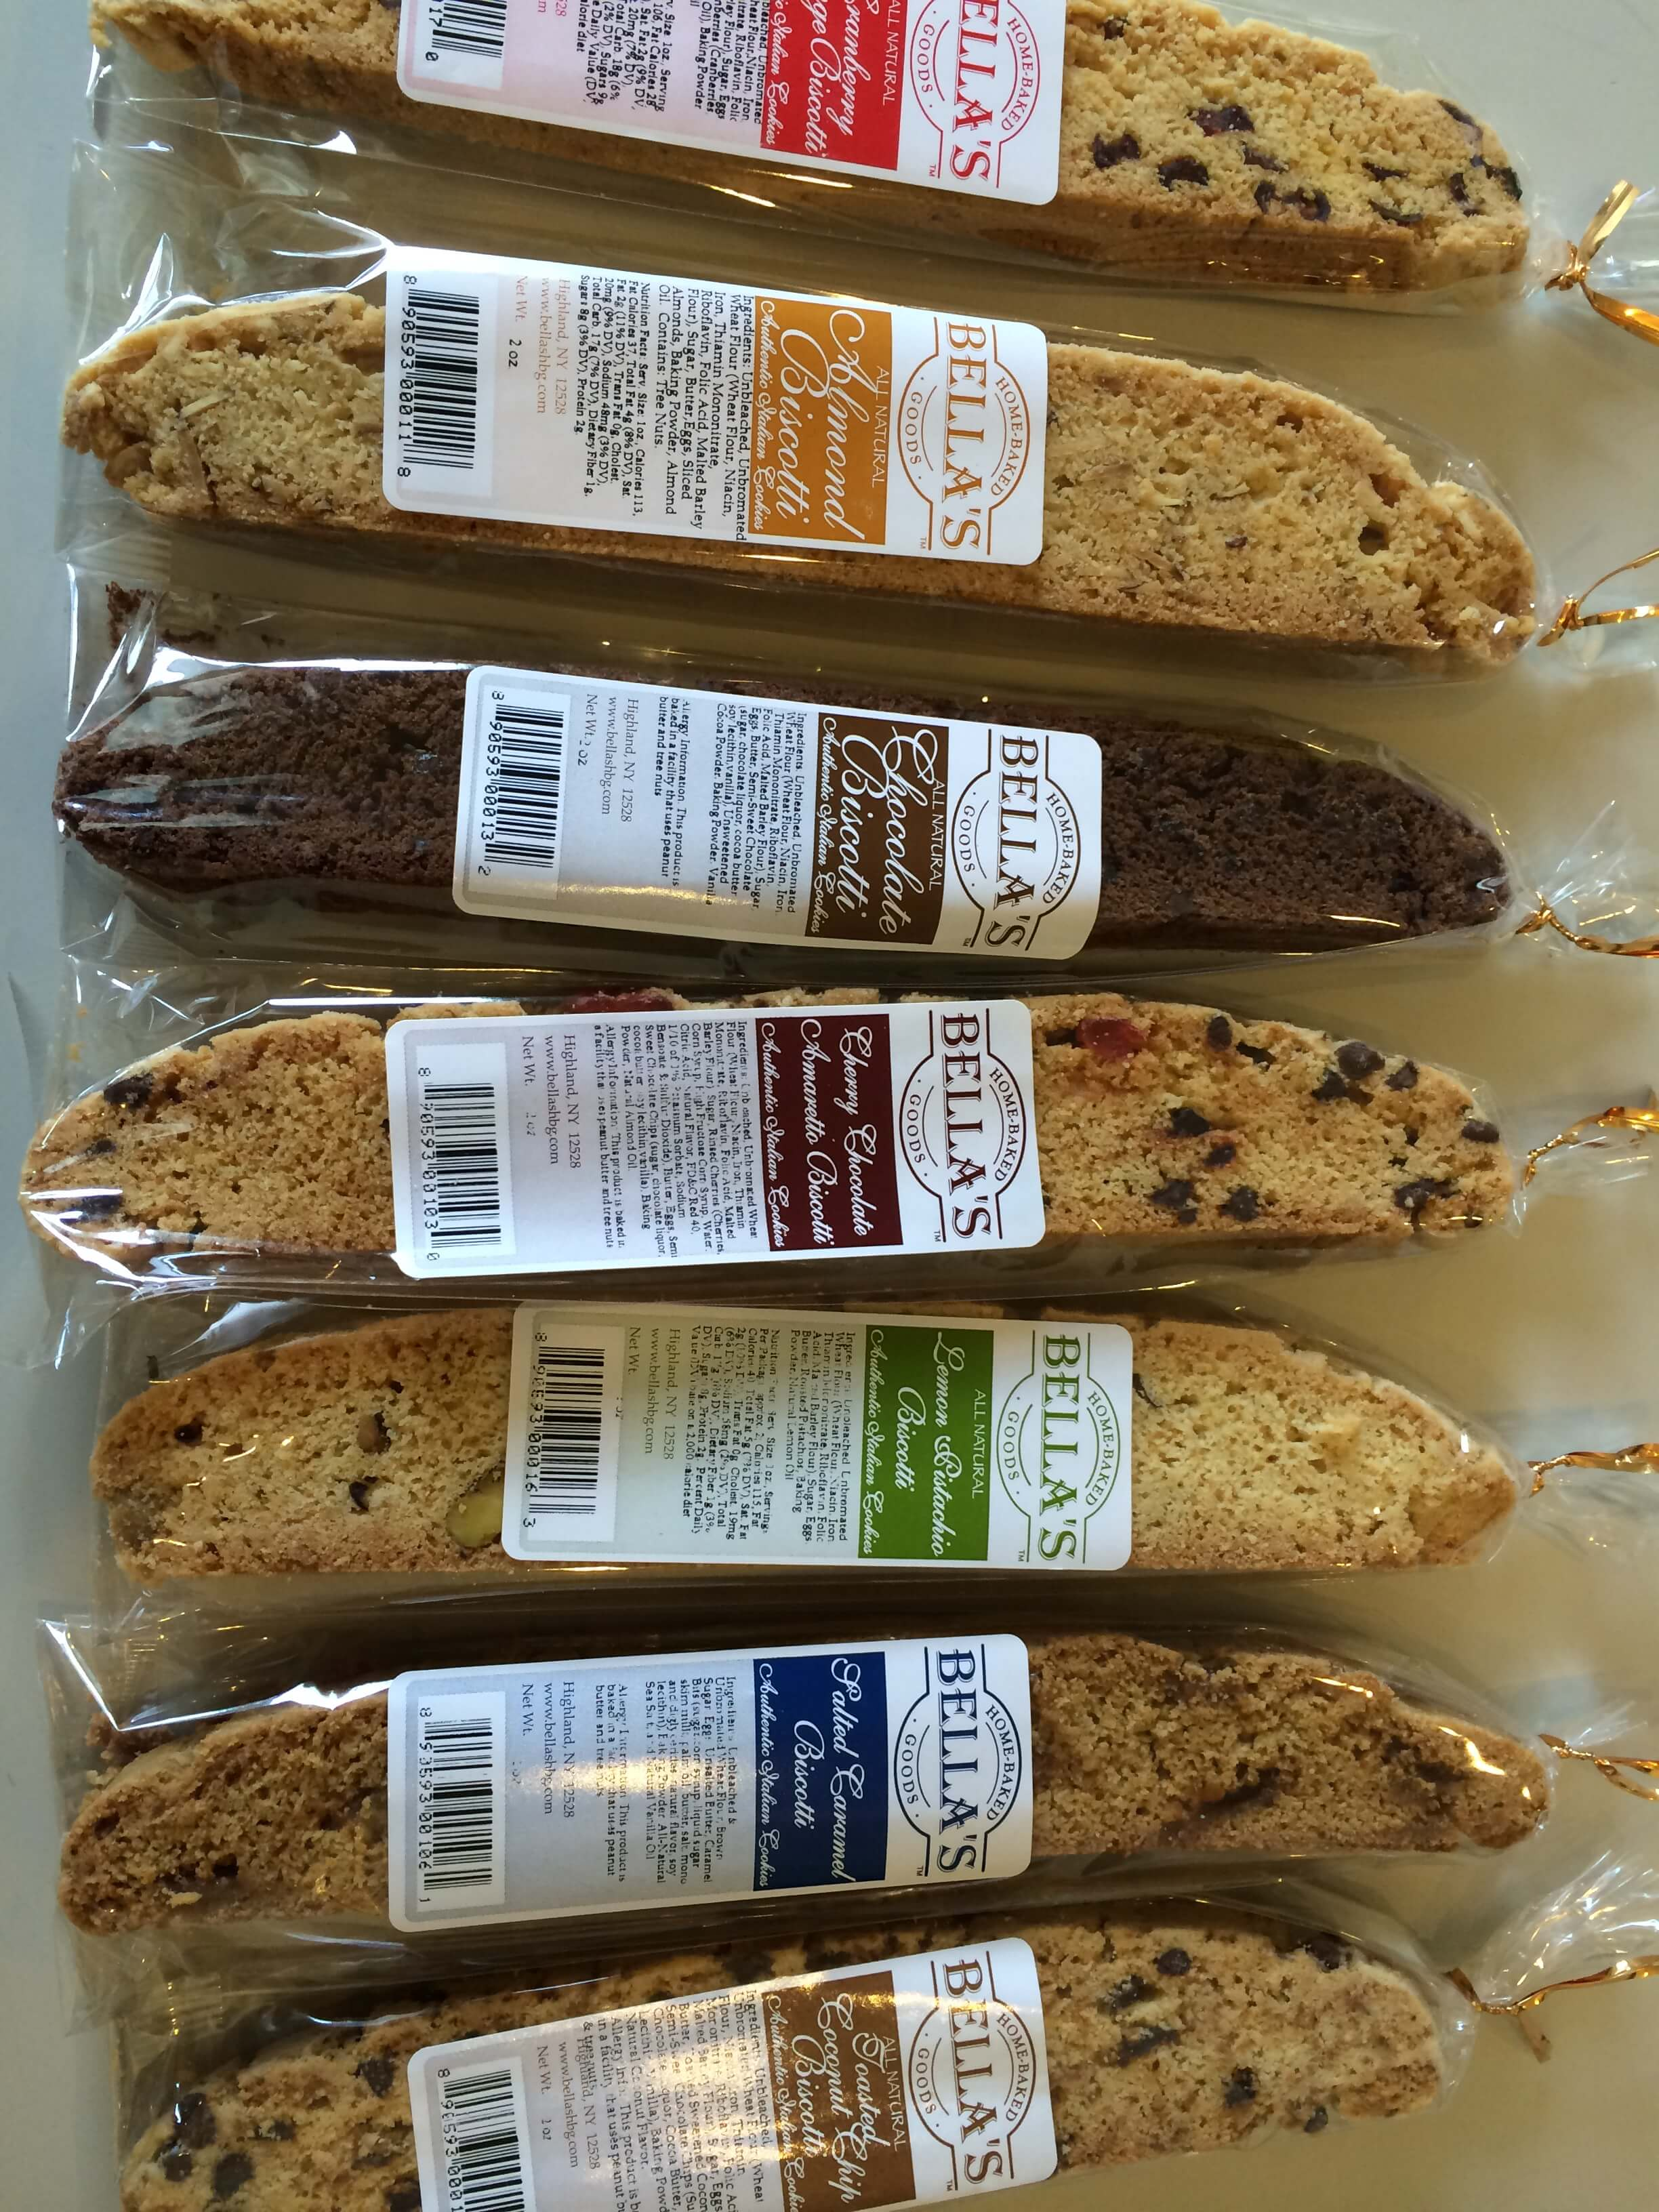 Bella's Home-Baked Goods: Italian Biscotti, caramel, upstate NY specialty dessert foods